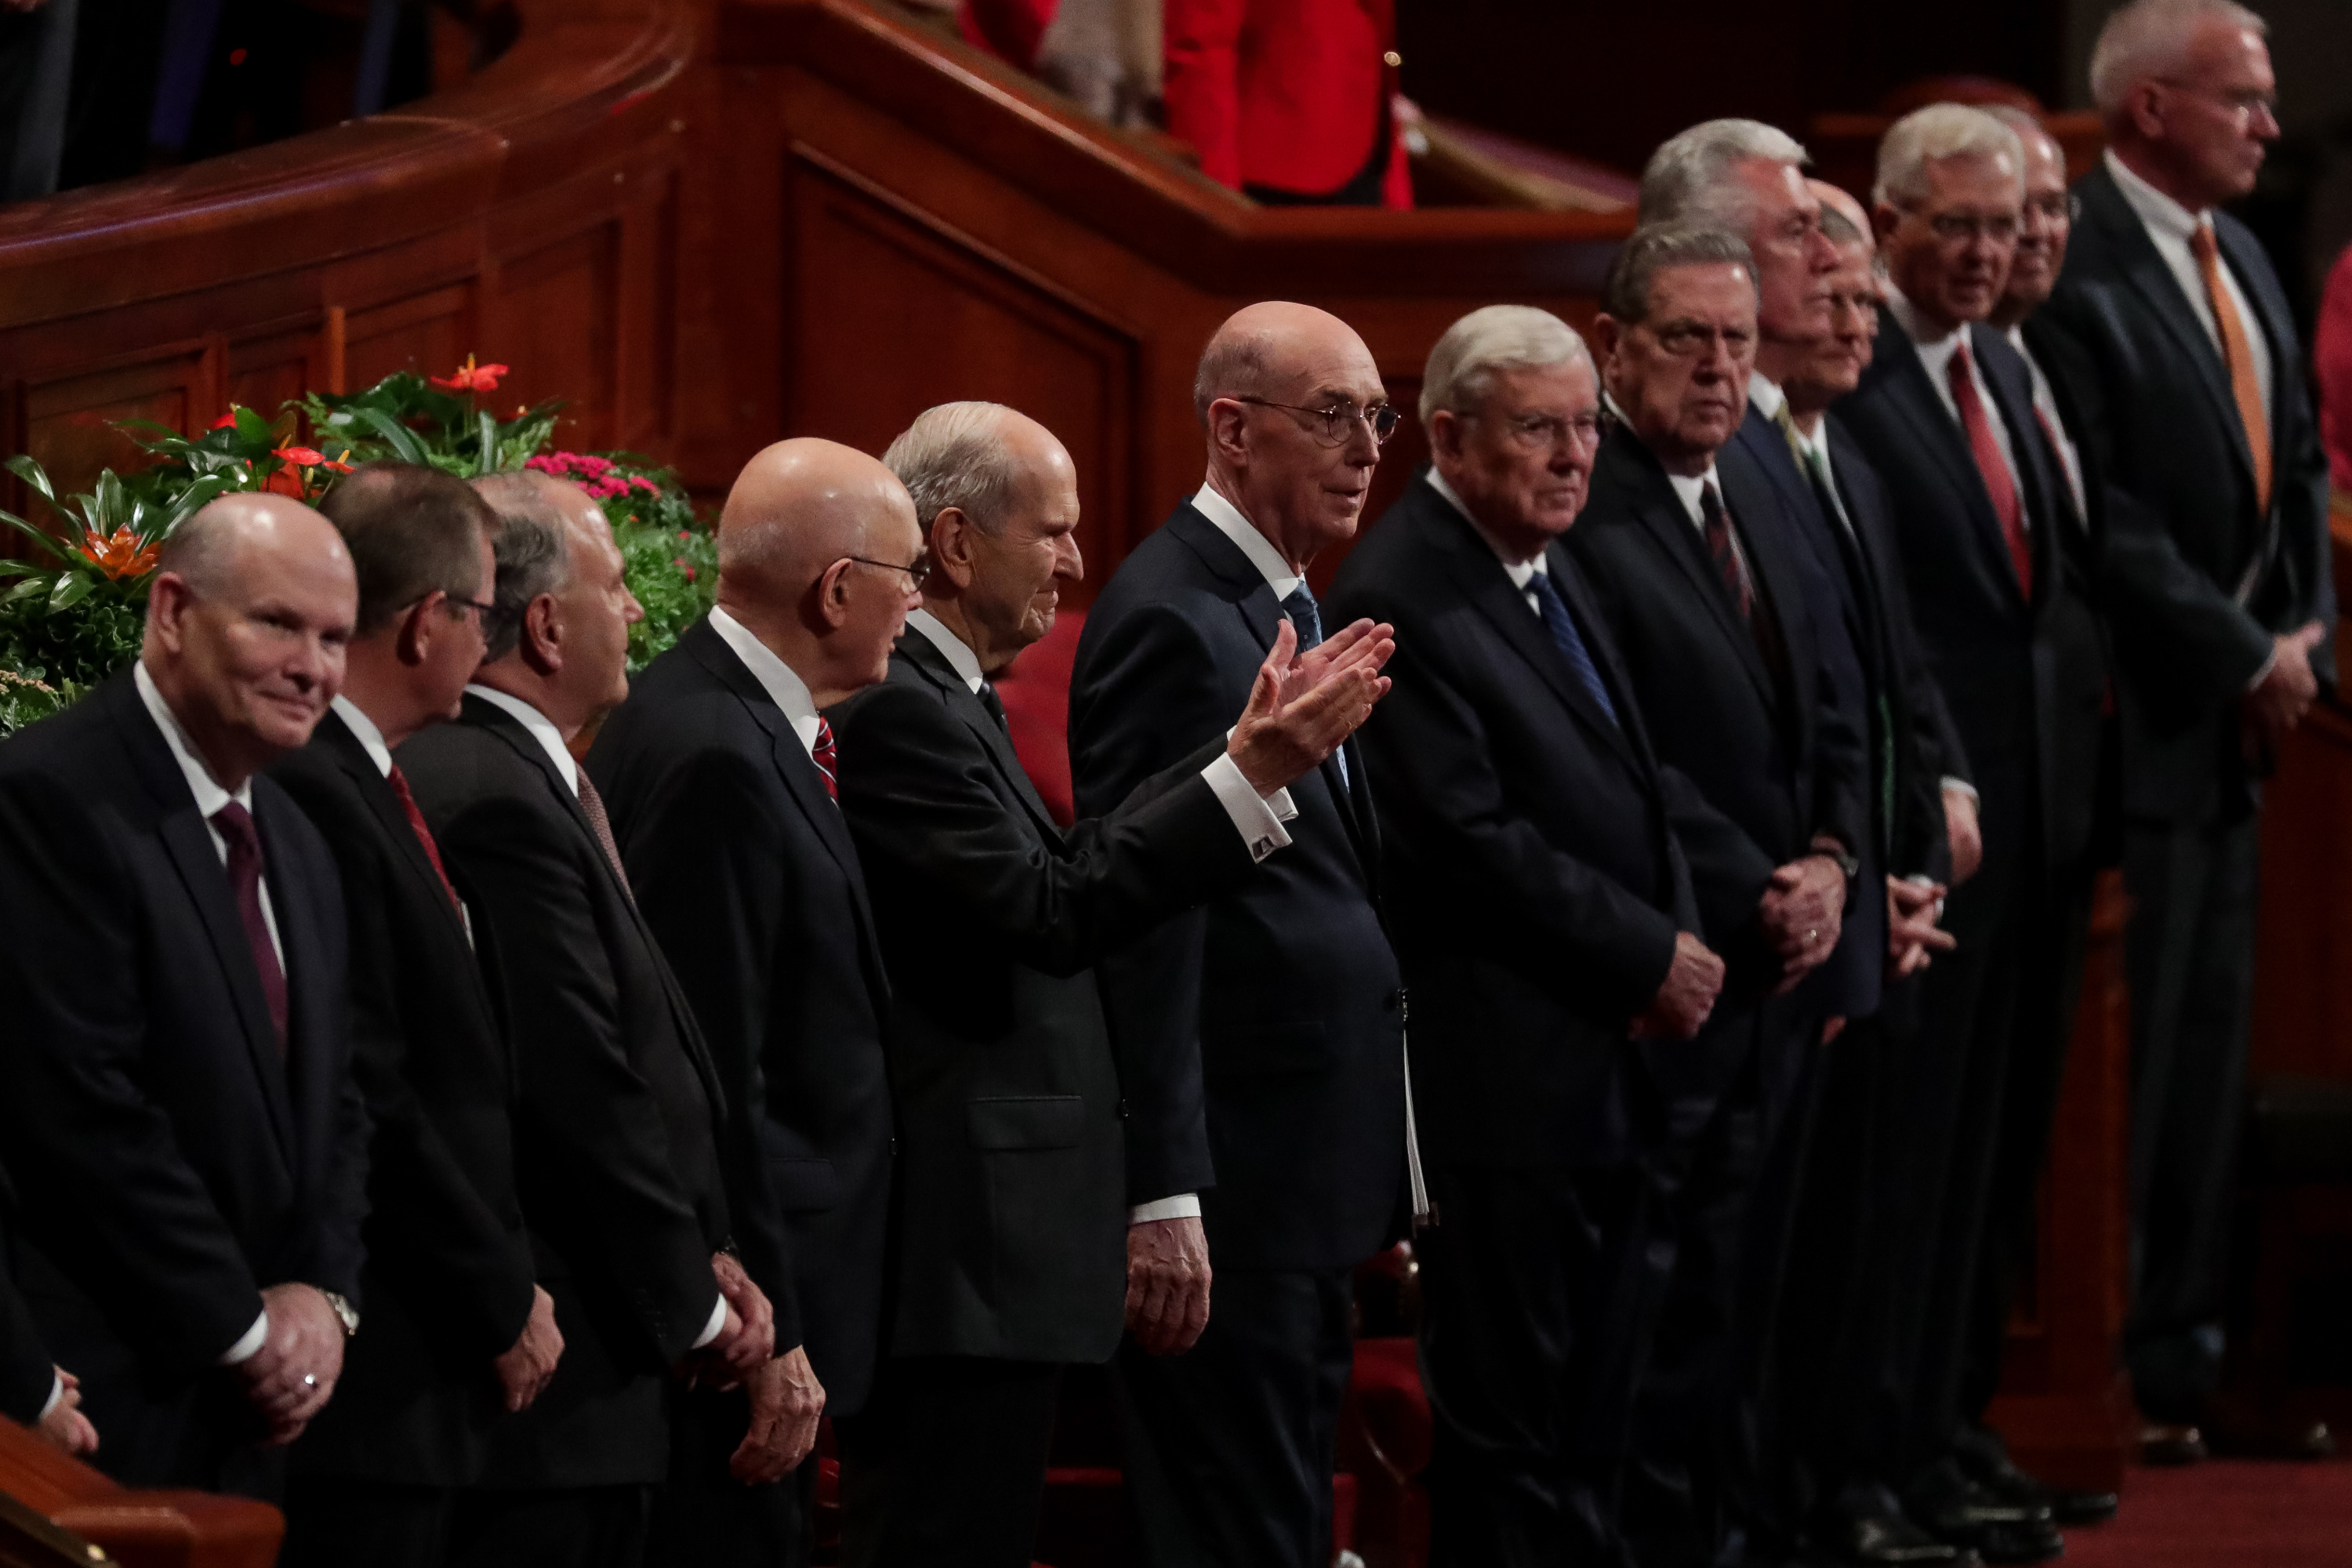 President Russell M. Nelson raises his hands toward conferencegoers at the start of the Saturday morning session of the 188th Semiannual General Conference of The Church of Jesus Christ of Latter-day Saints in the Conference Center in Salt Lake City on Saturday, Oct. 6, 2018.